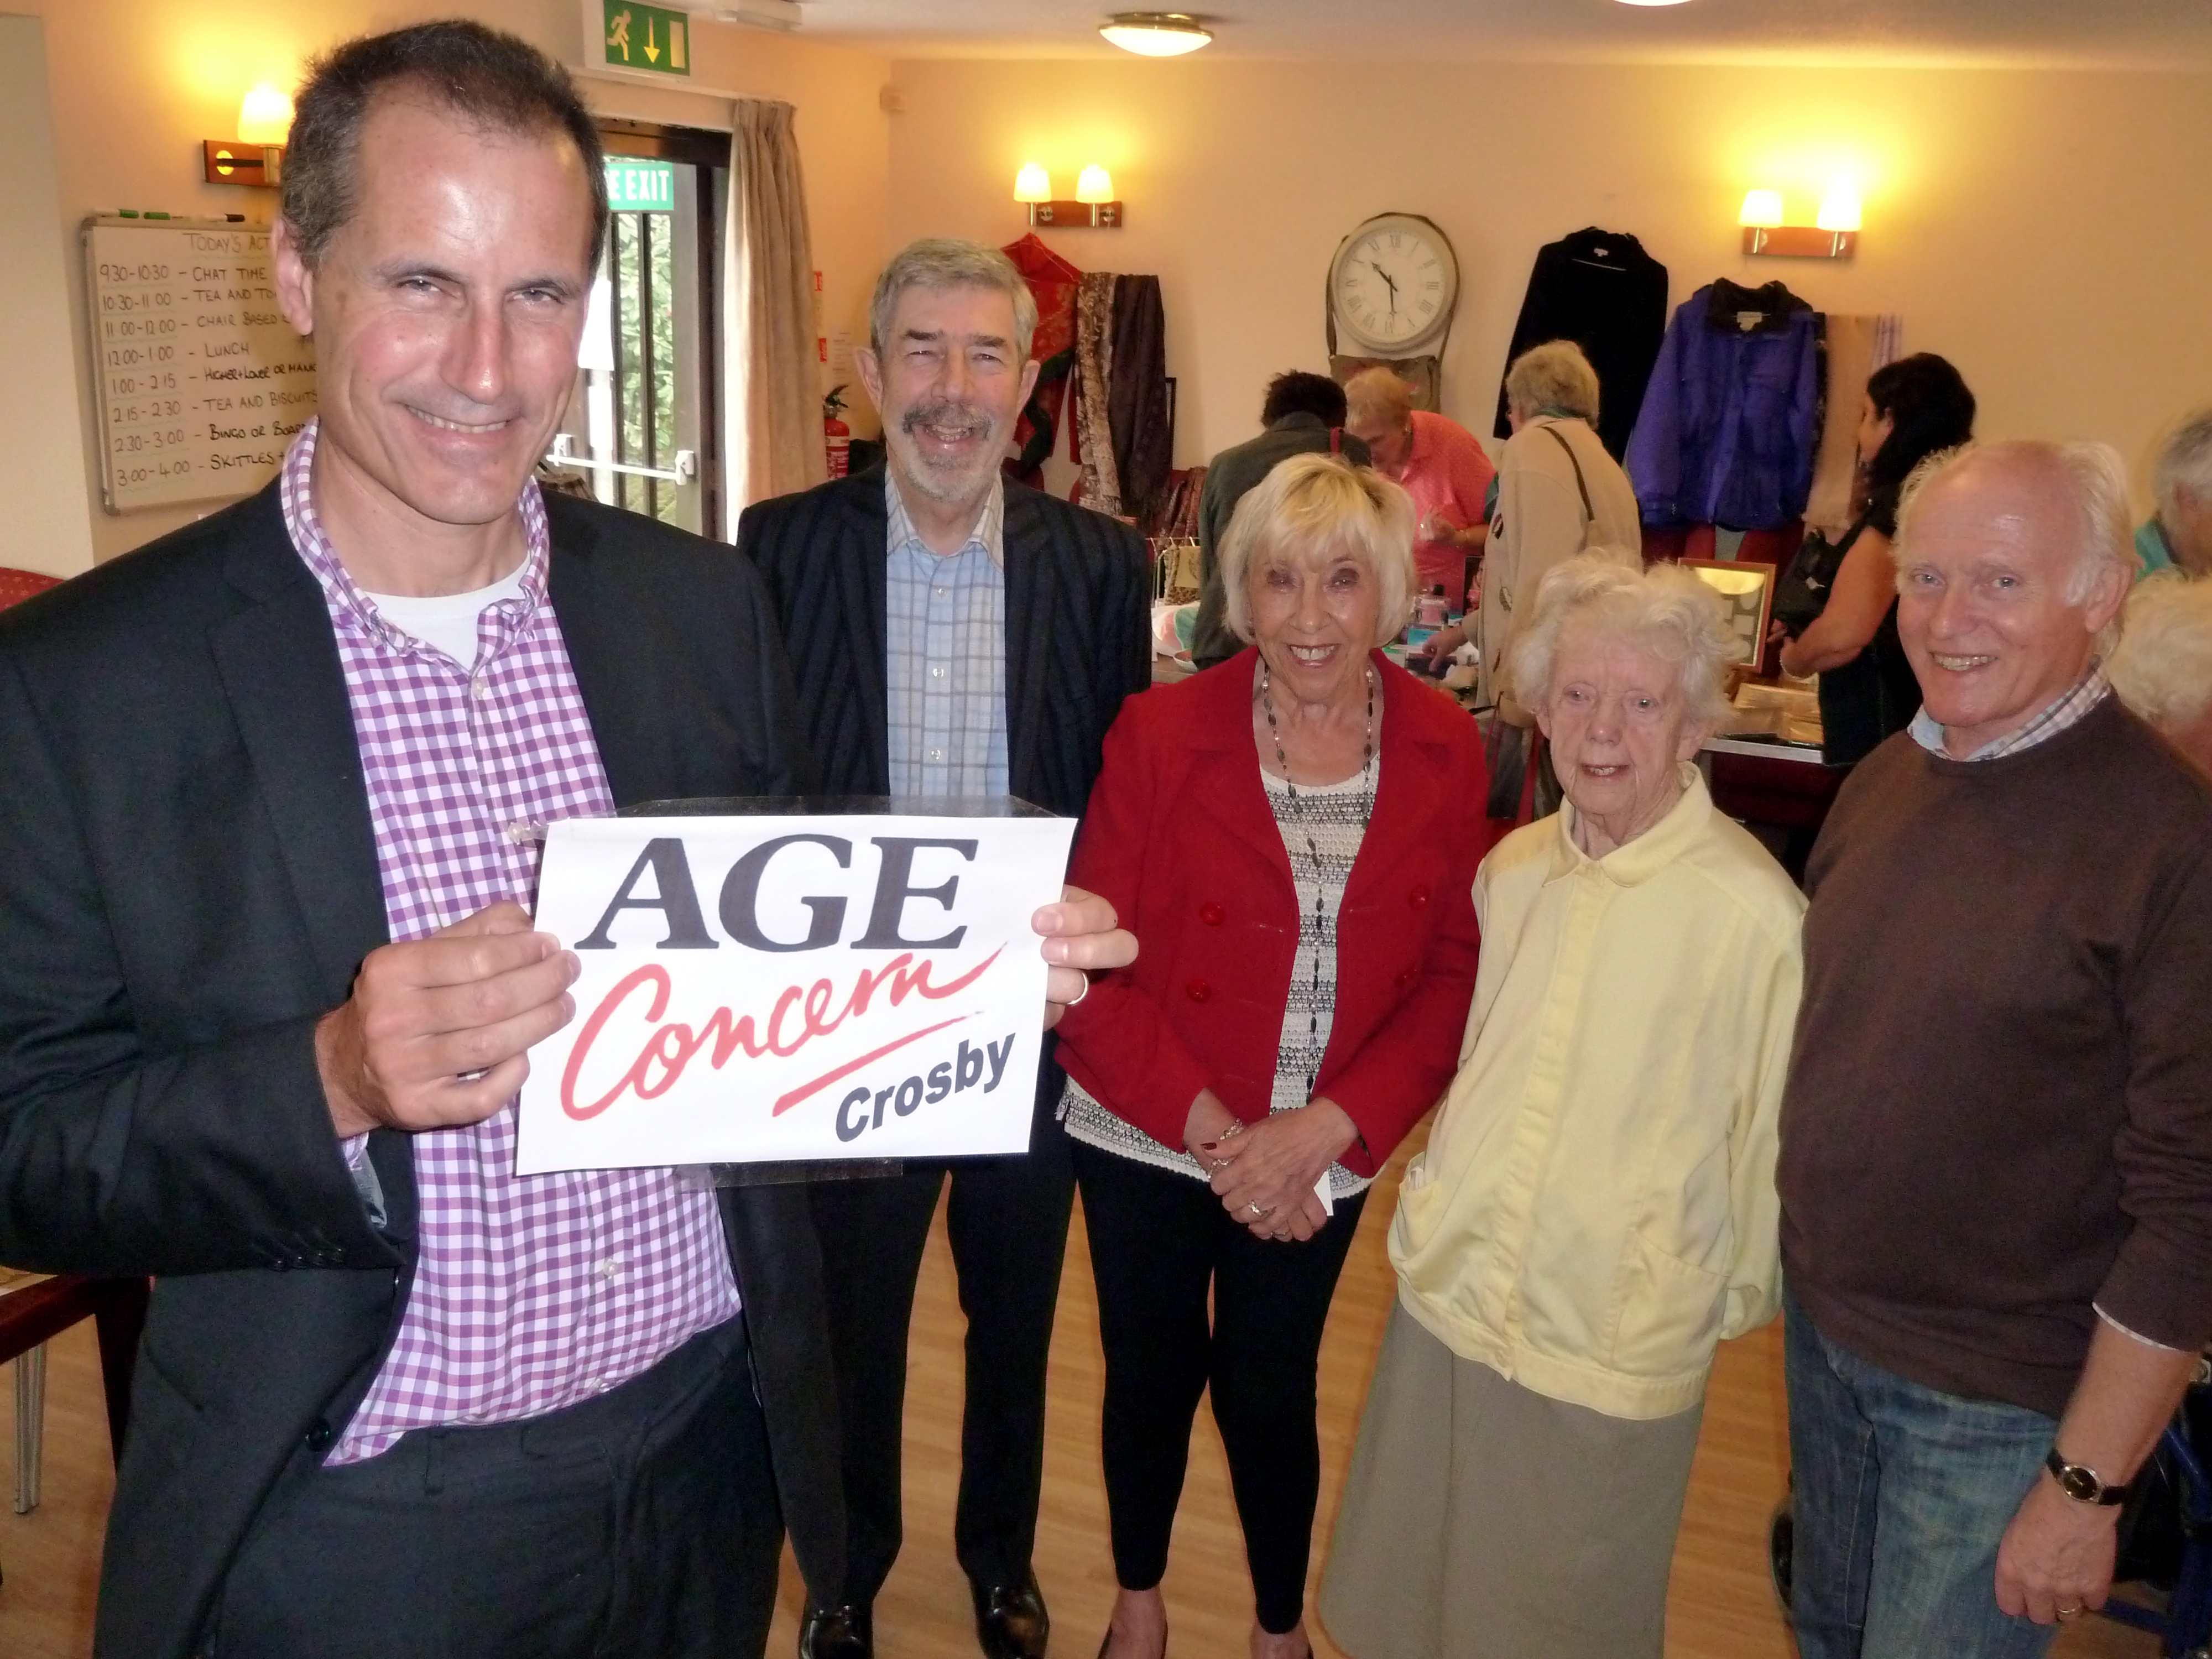 Sefton Central Labour MP Bill Esterson joins Age Concern Crosby vice chairman Anthony Hill, office manager Shirley Higgs, secretary Jean Kerrigan and chairman Chris Dale at the fundraising coffee morning at the Haigh Road Day Centre.